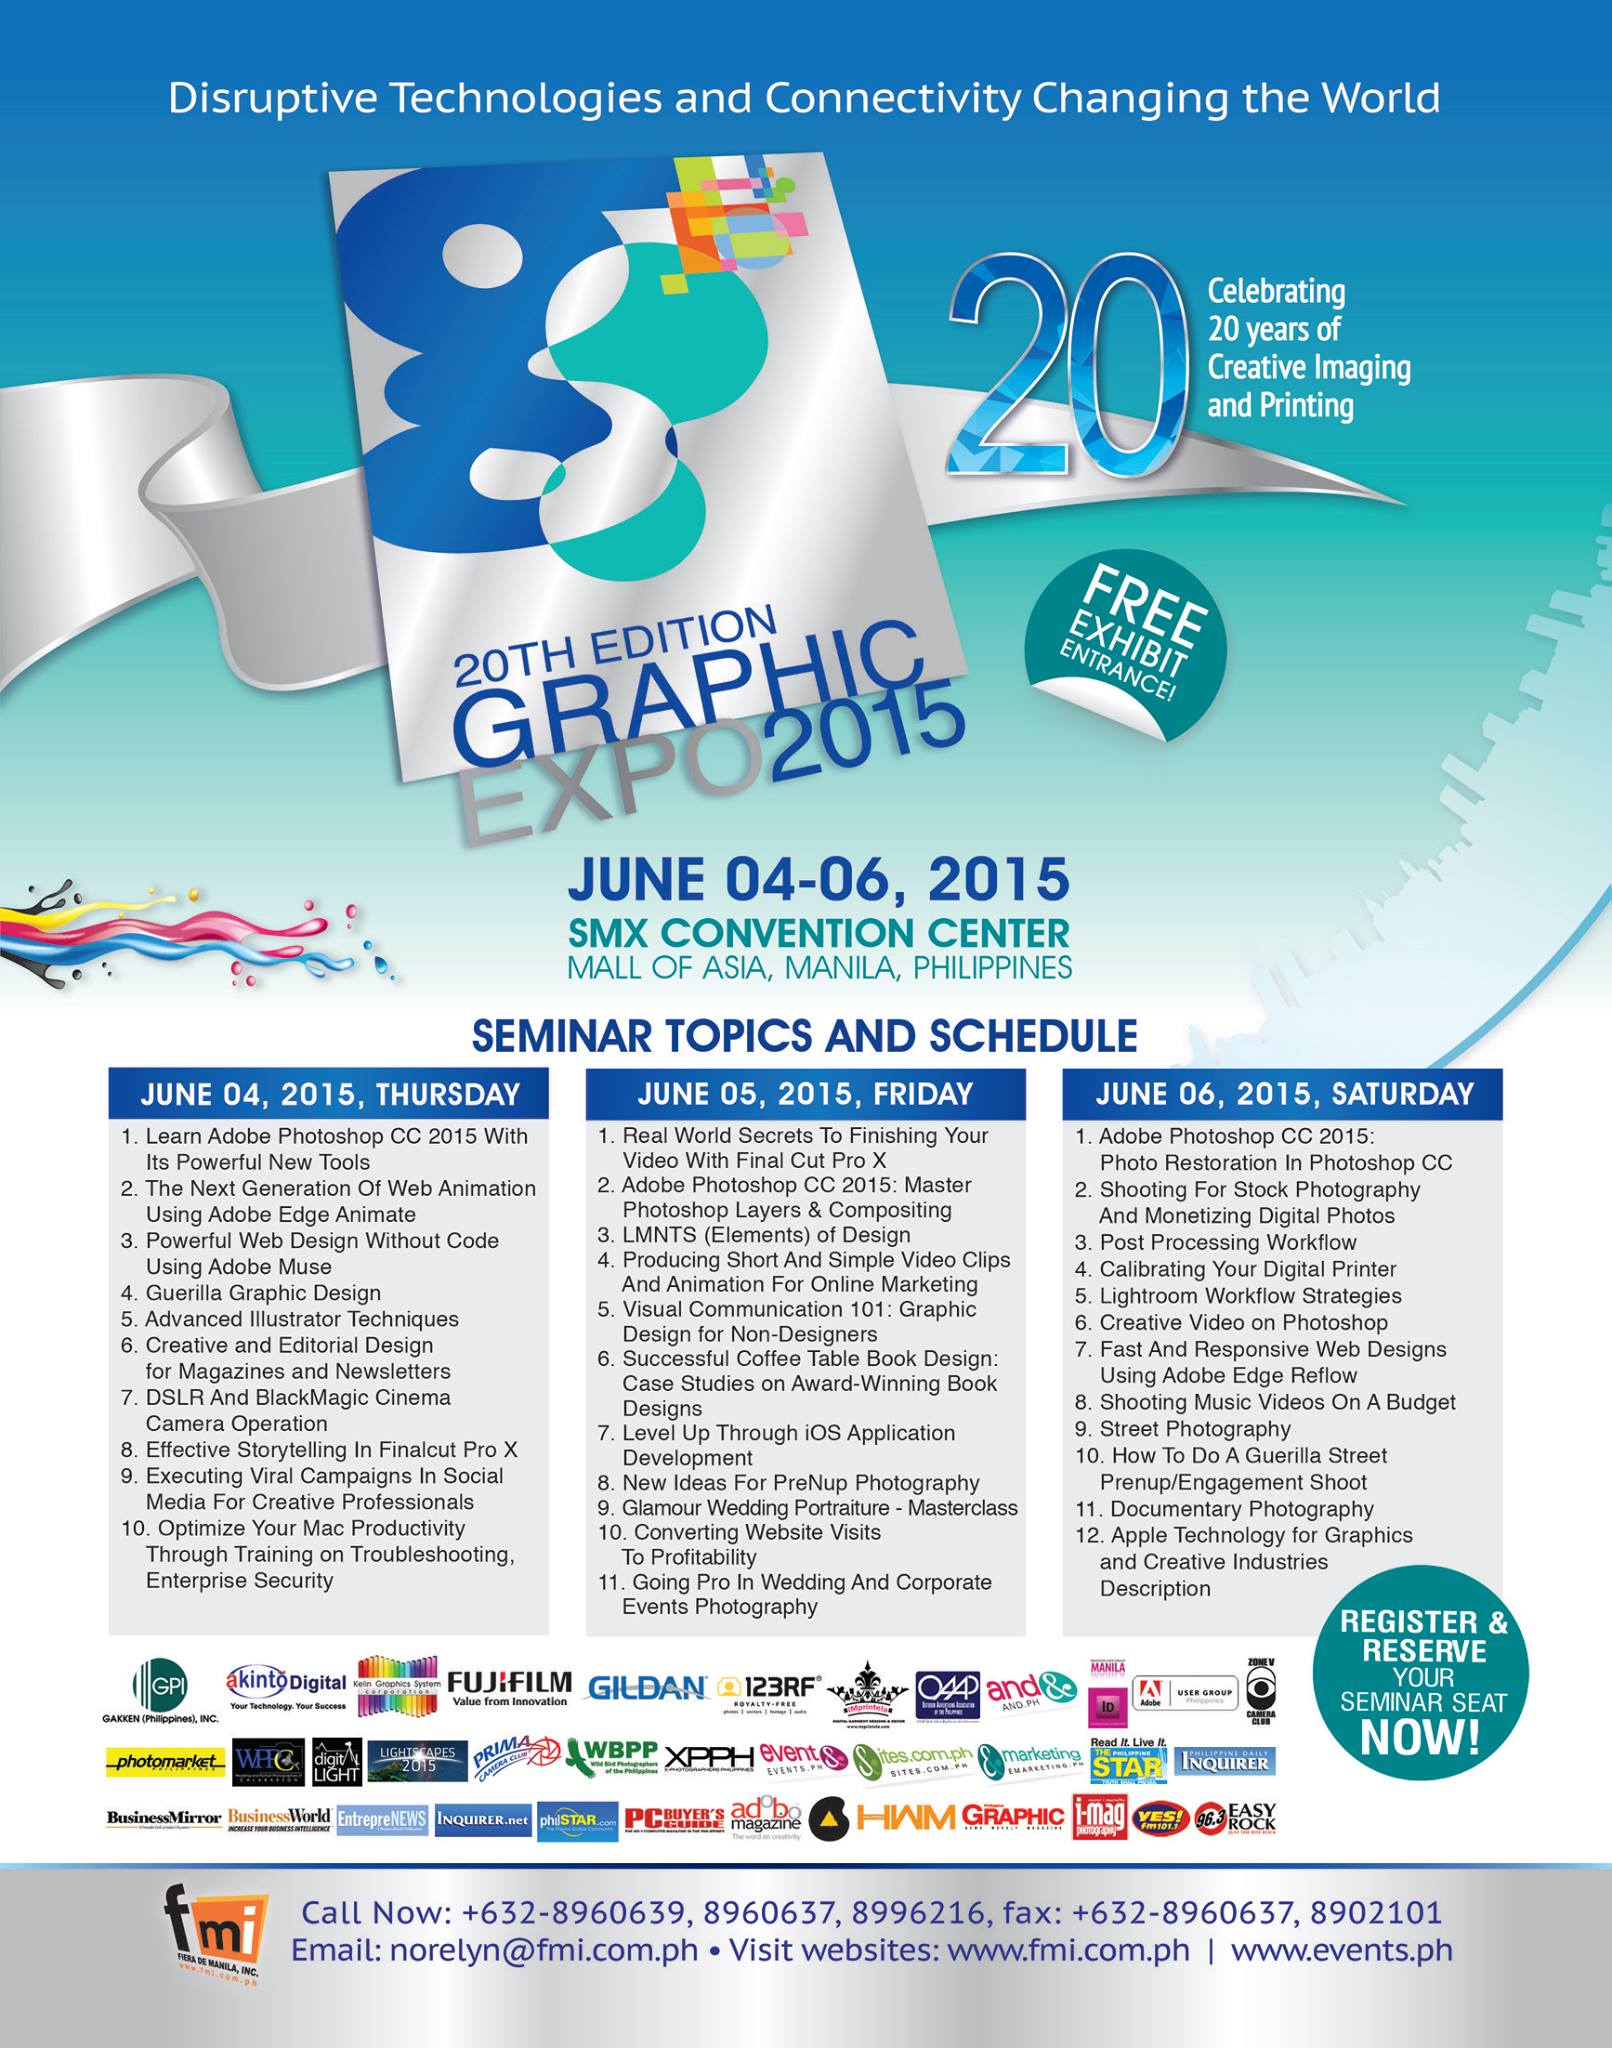 Register to the 20th Graphic Expo 2015